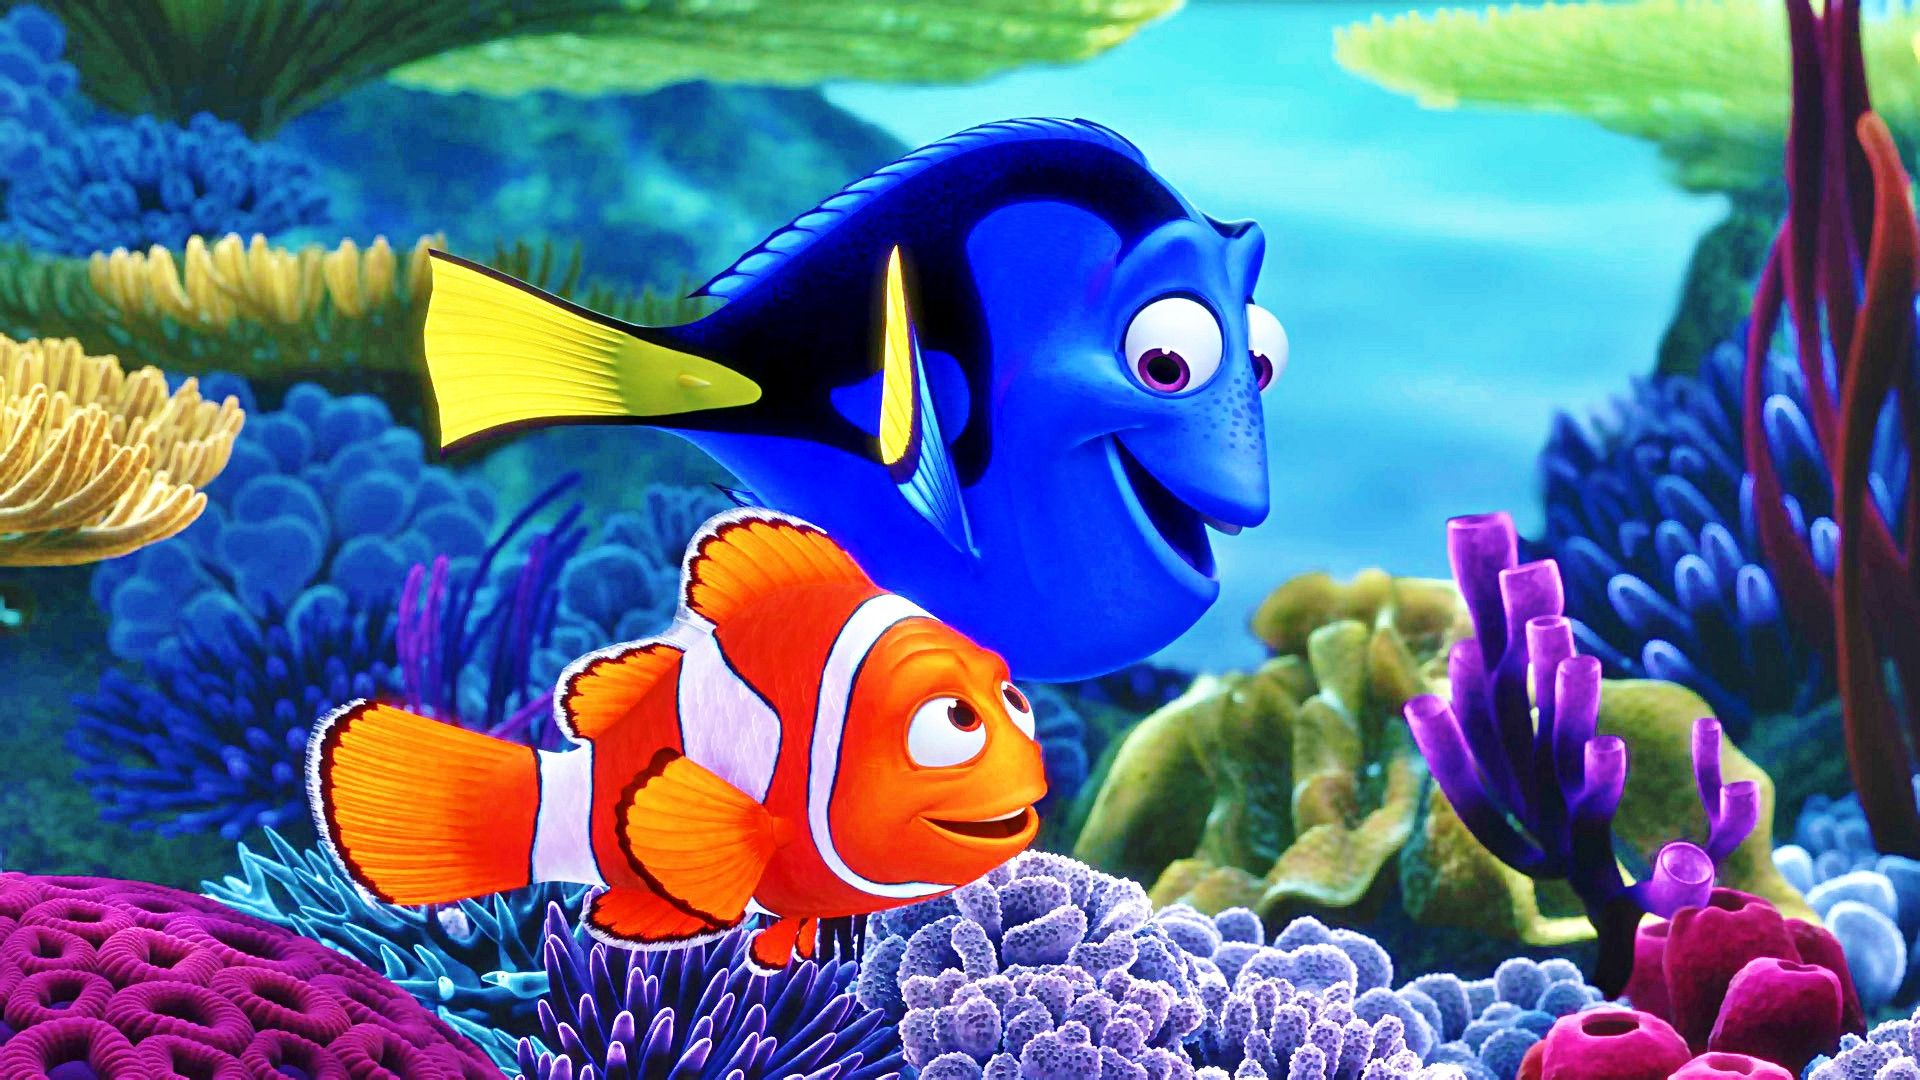 DisneyPixar Wallpapers   Finding Nemo   Walt Disney Characters 1920x1080